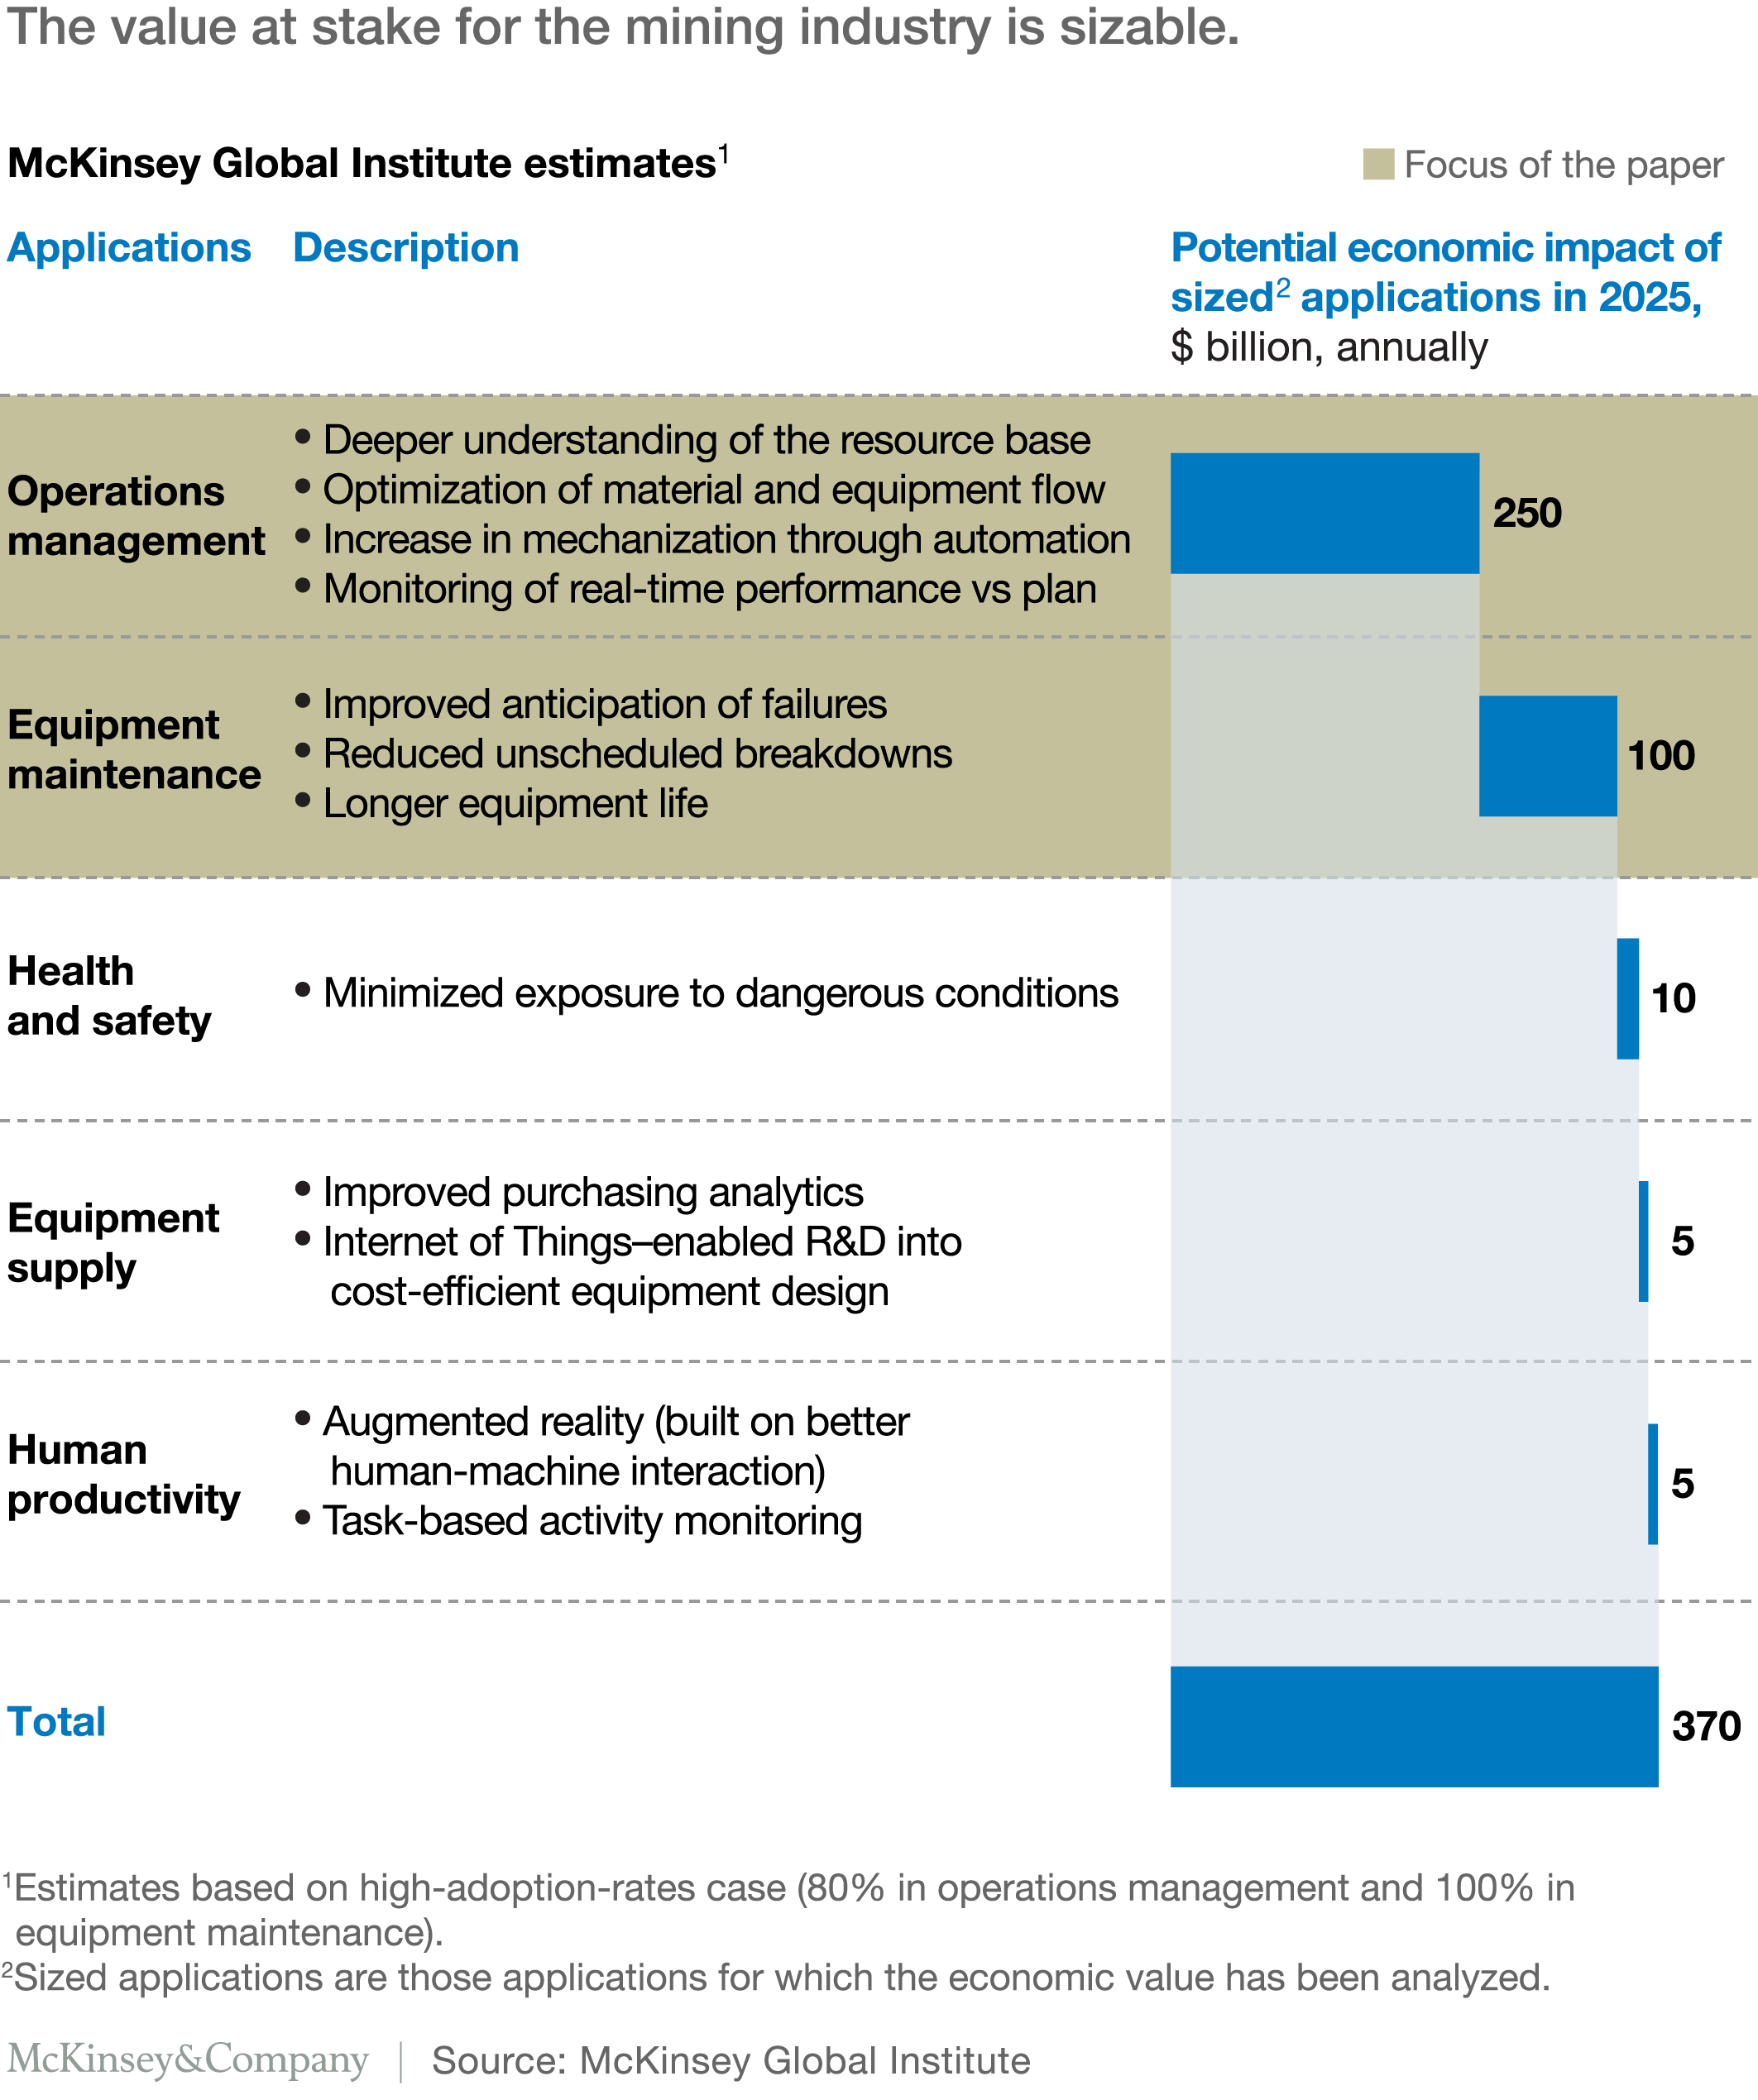 how digital innovation can improve mining productivity mckinsey the value at stake for the mining industry is sizable